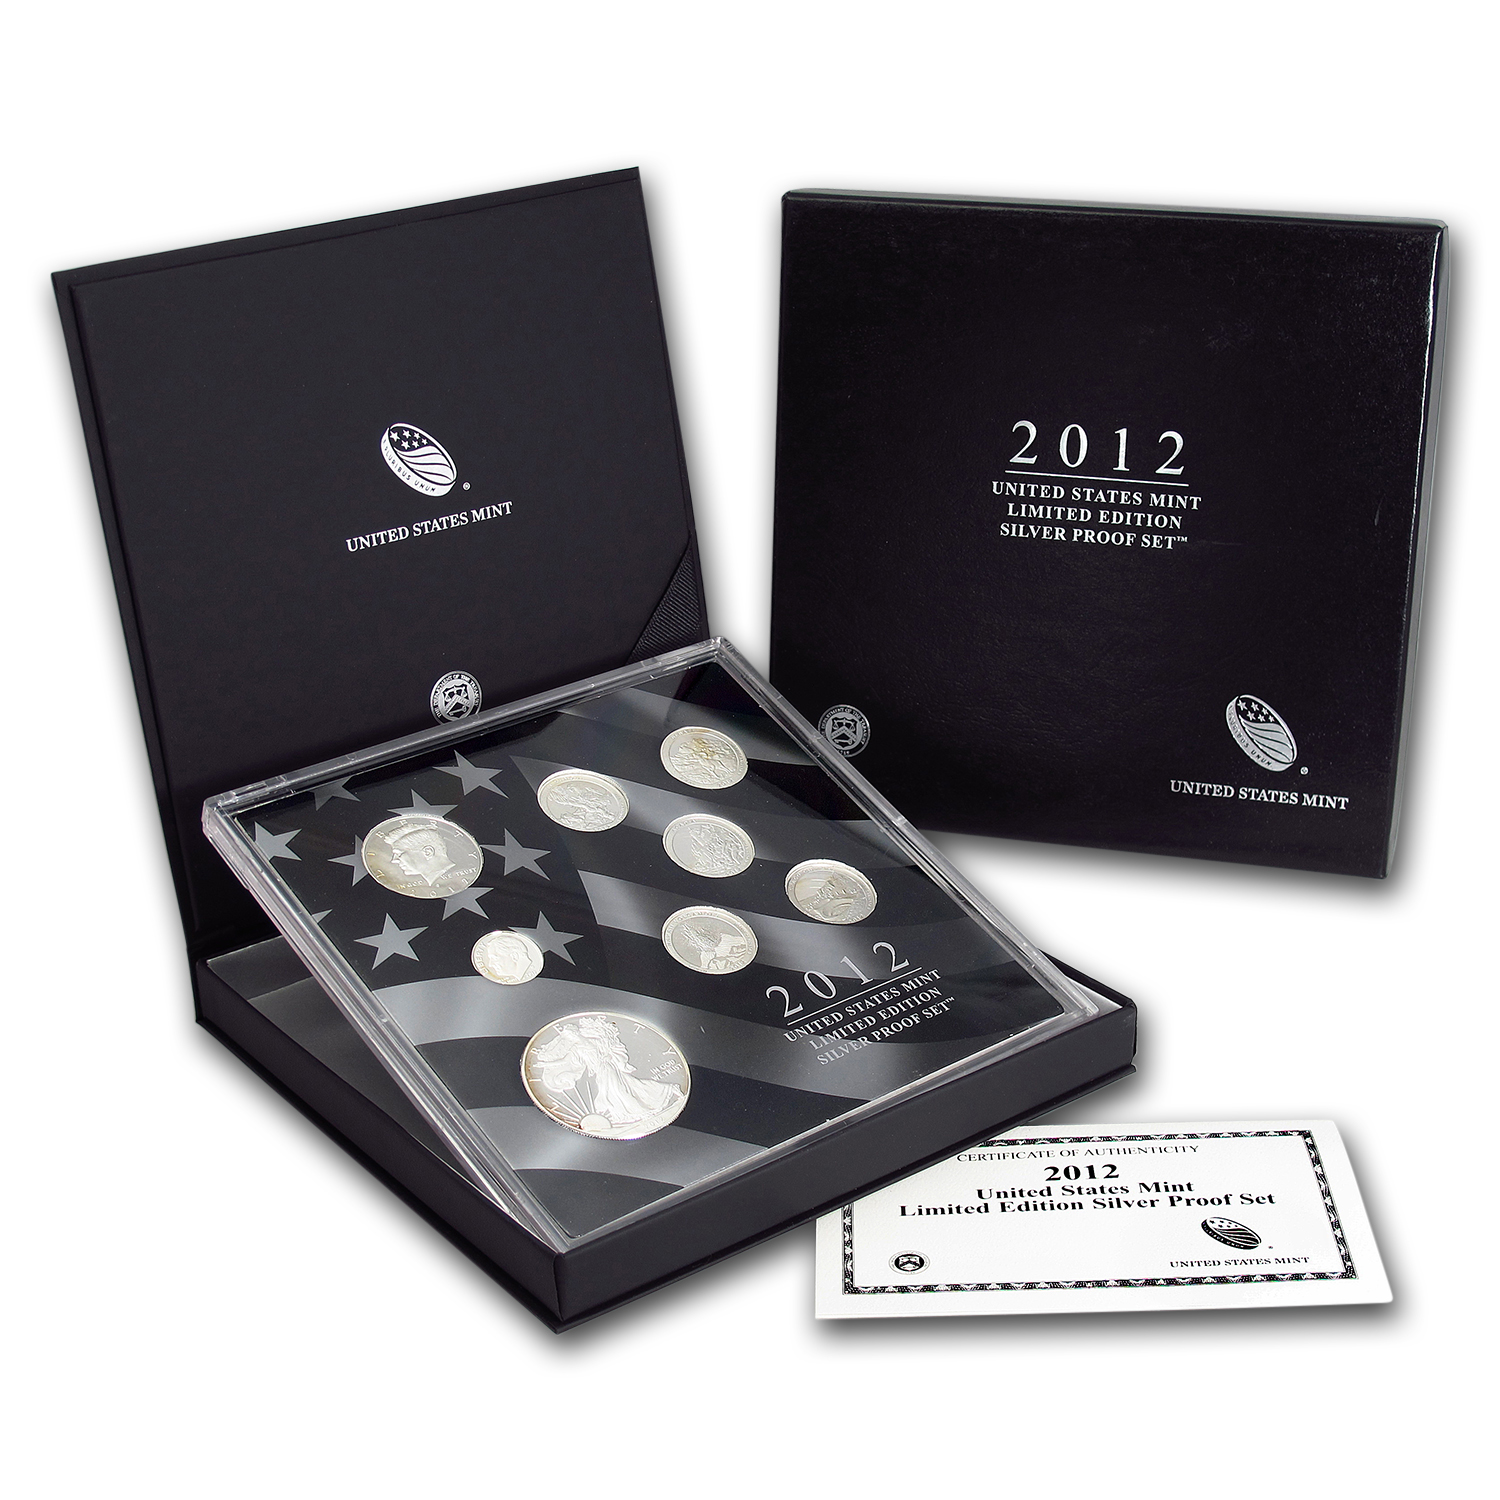 2012 Limited Edition Silver Proof Set